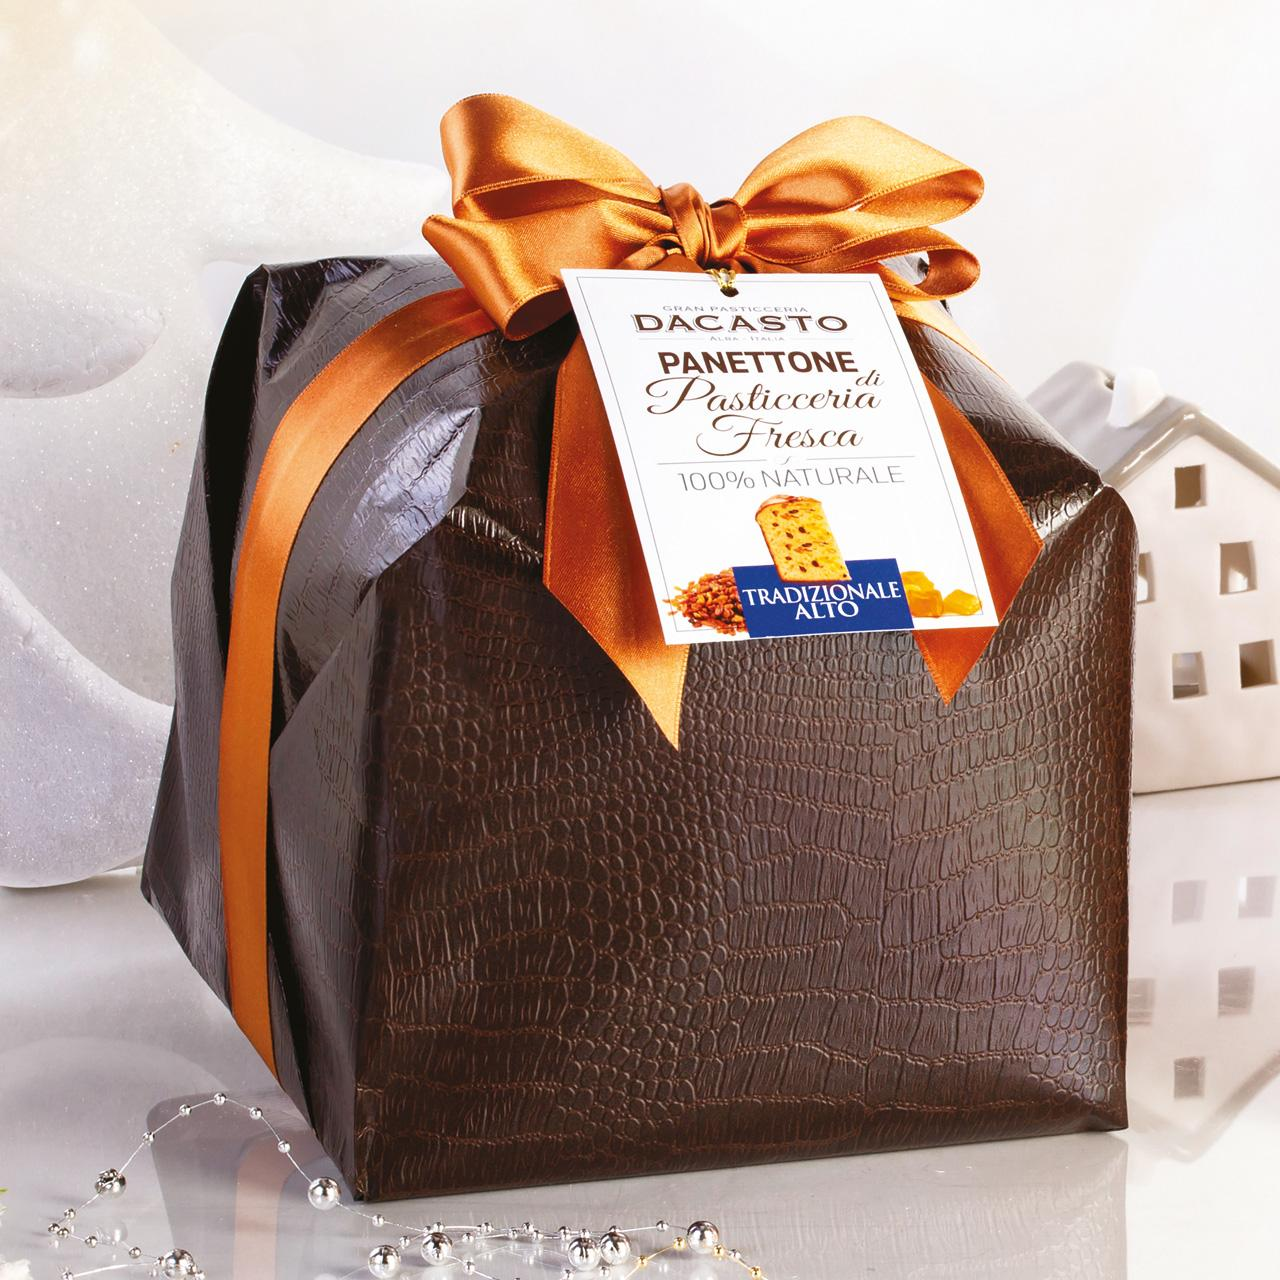 TRADITIONAL ORGANIC PANETTONE – Tall Version